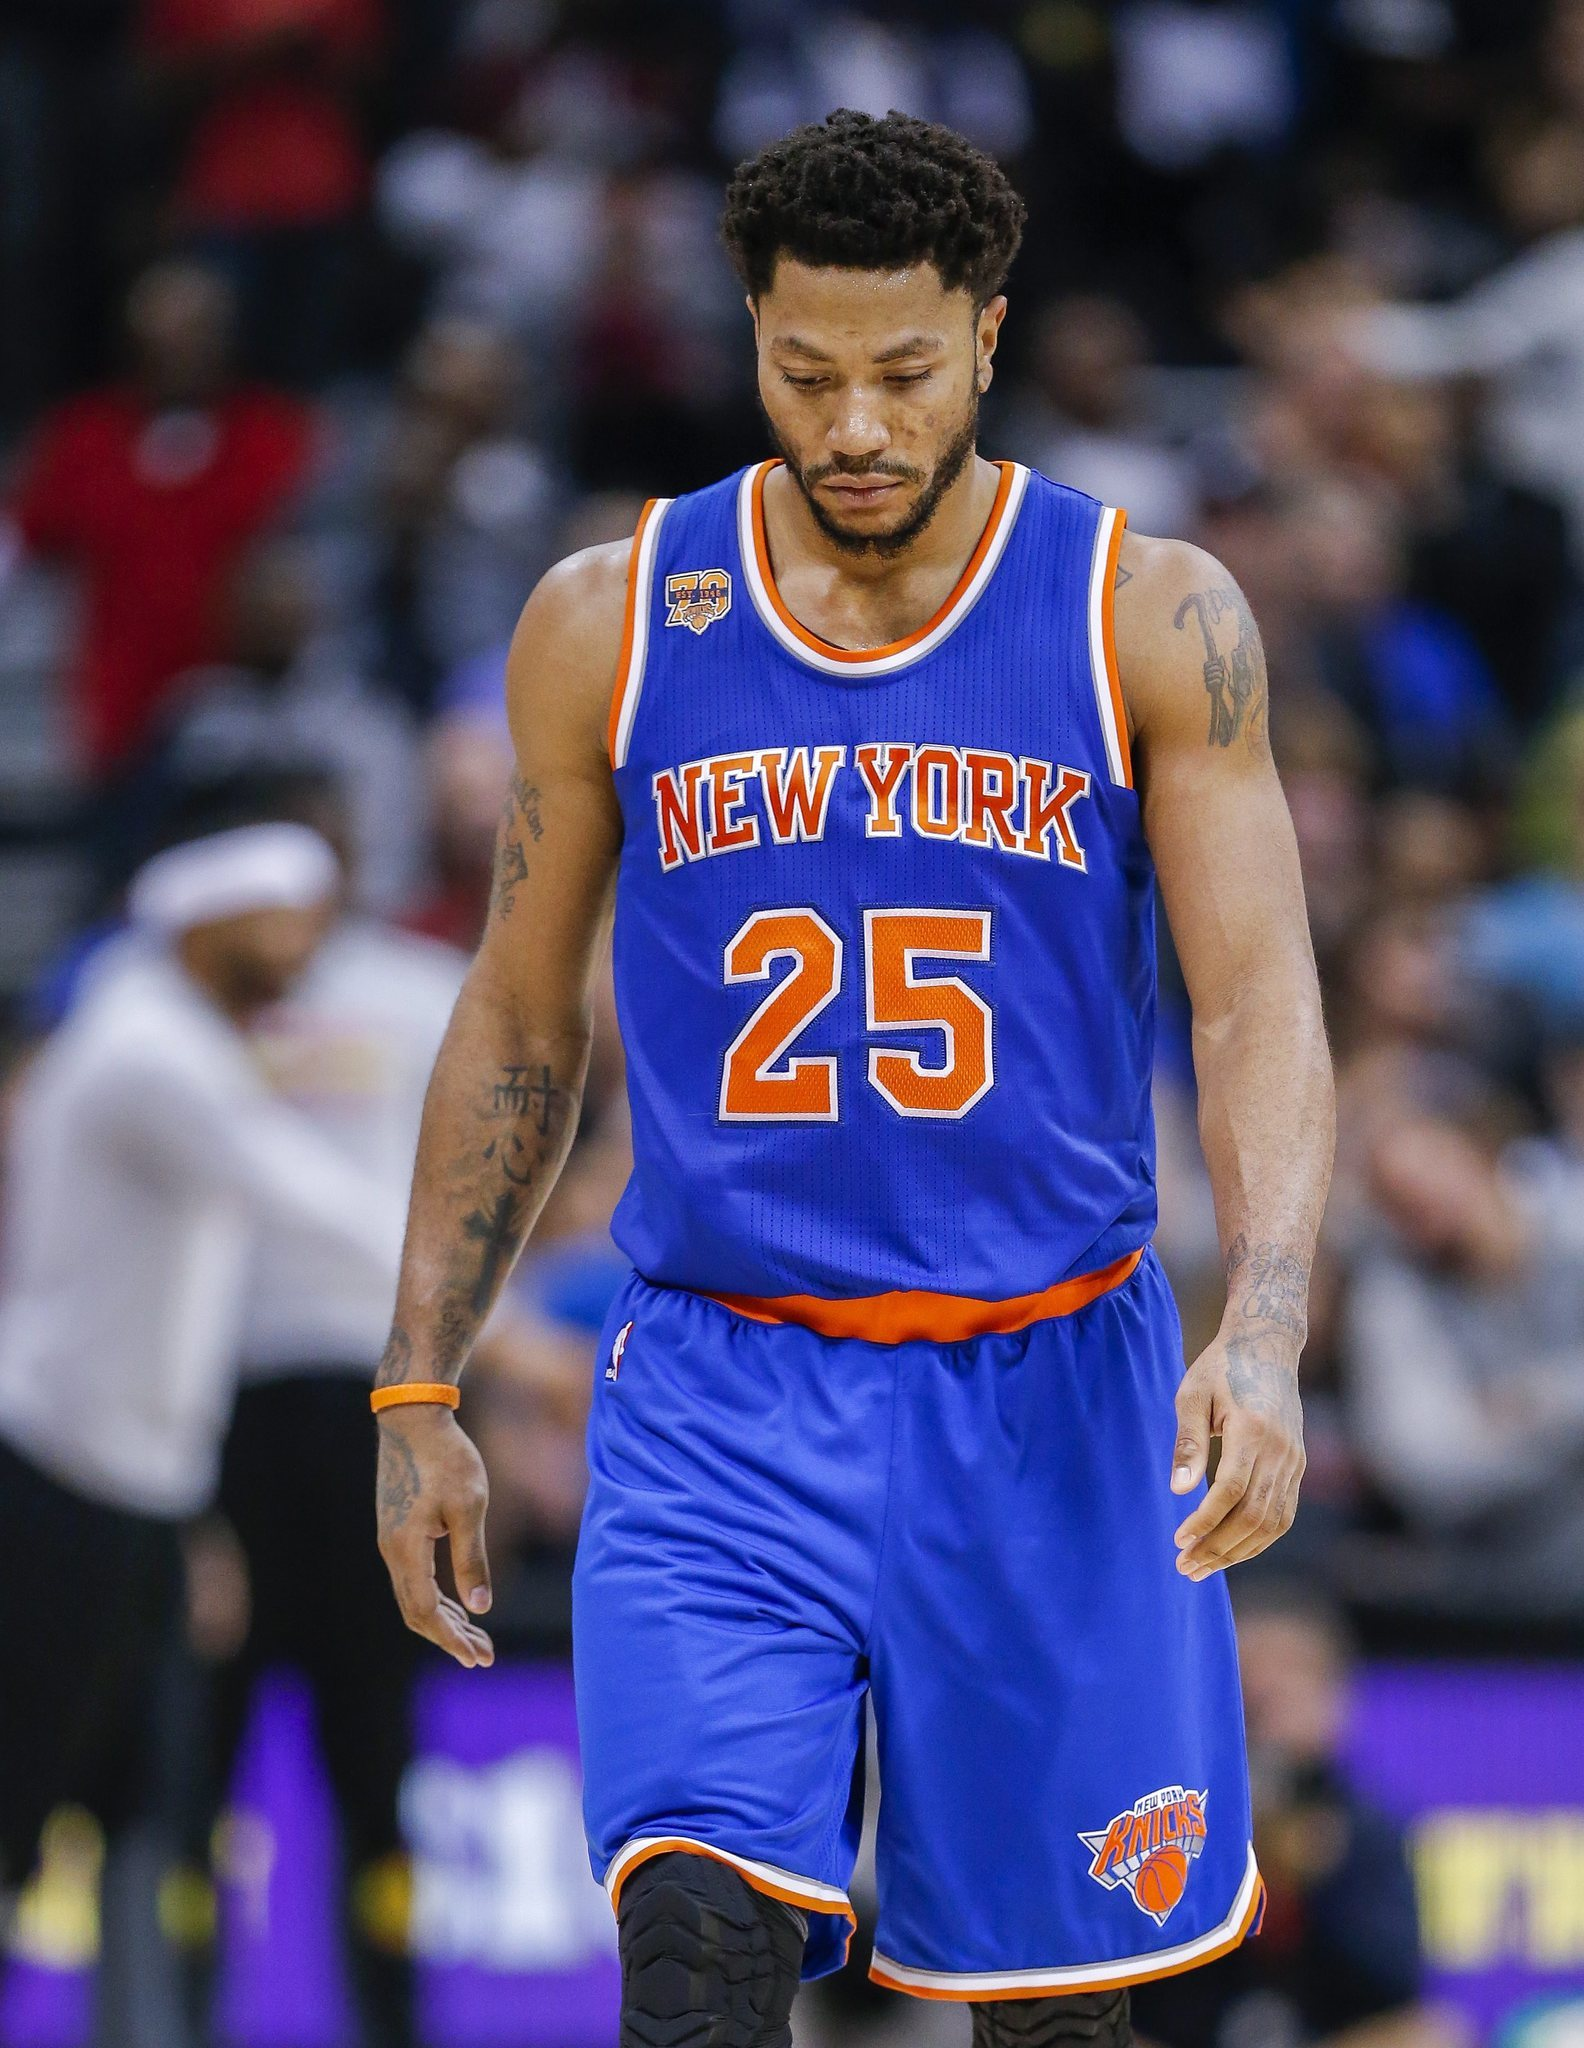 65821273ac27 Derrick Rose back with Knicks after going to Chicago for family reasons -  Chicago Tribune